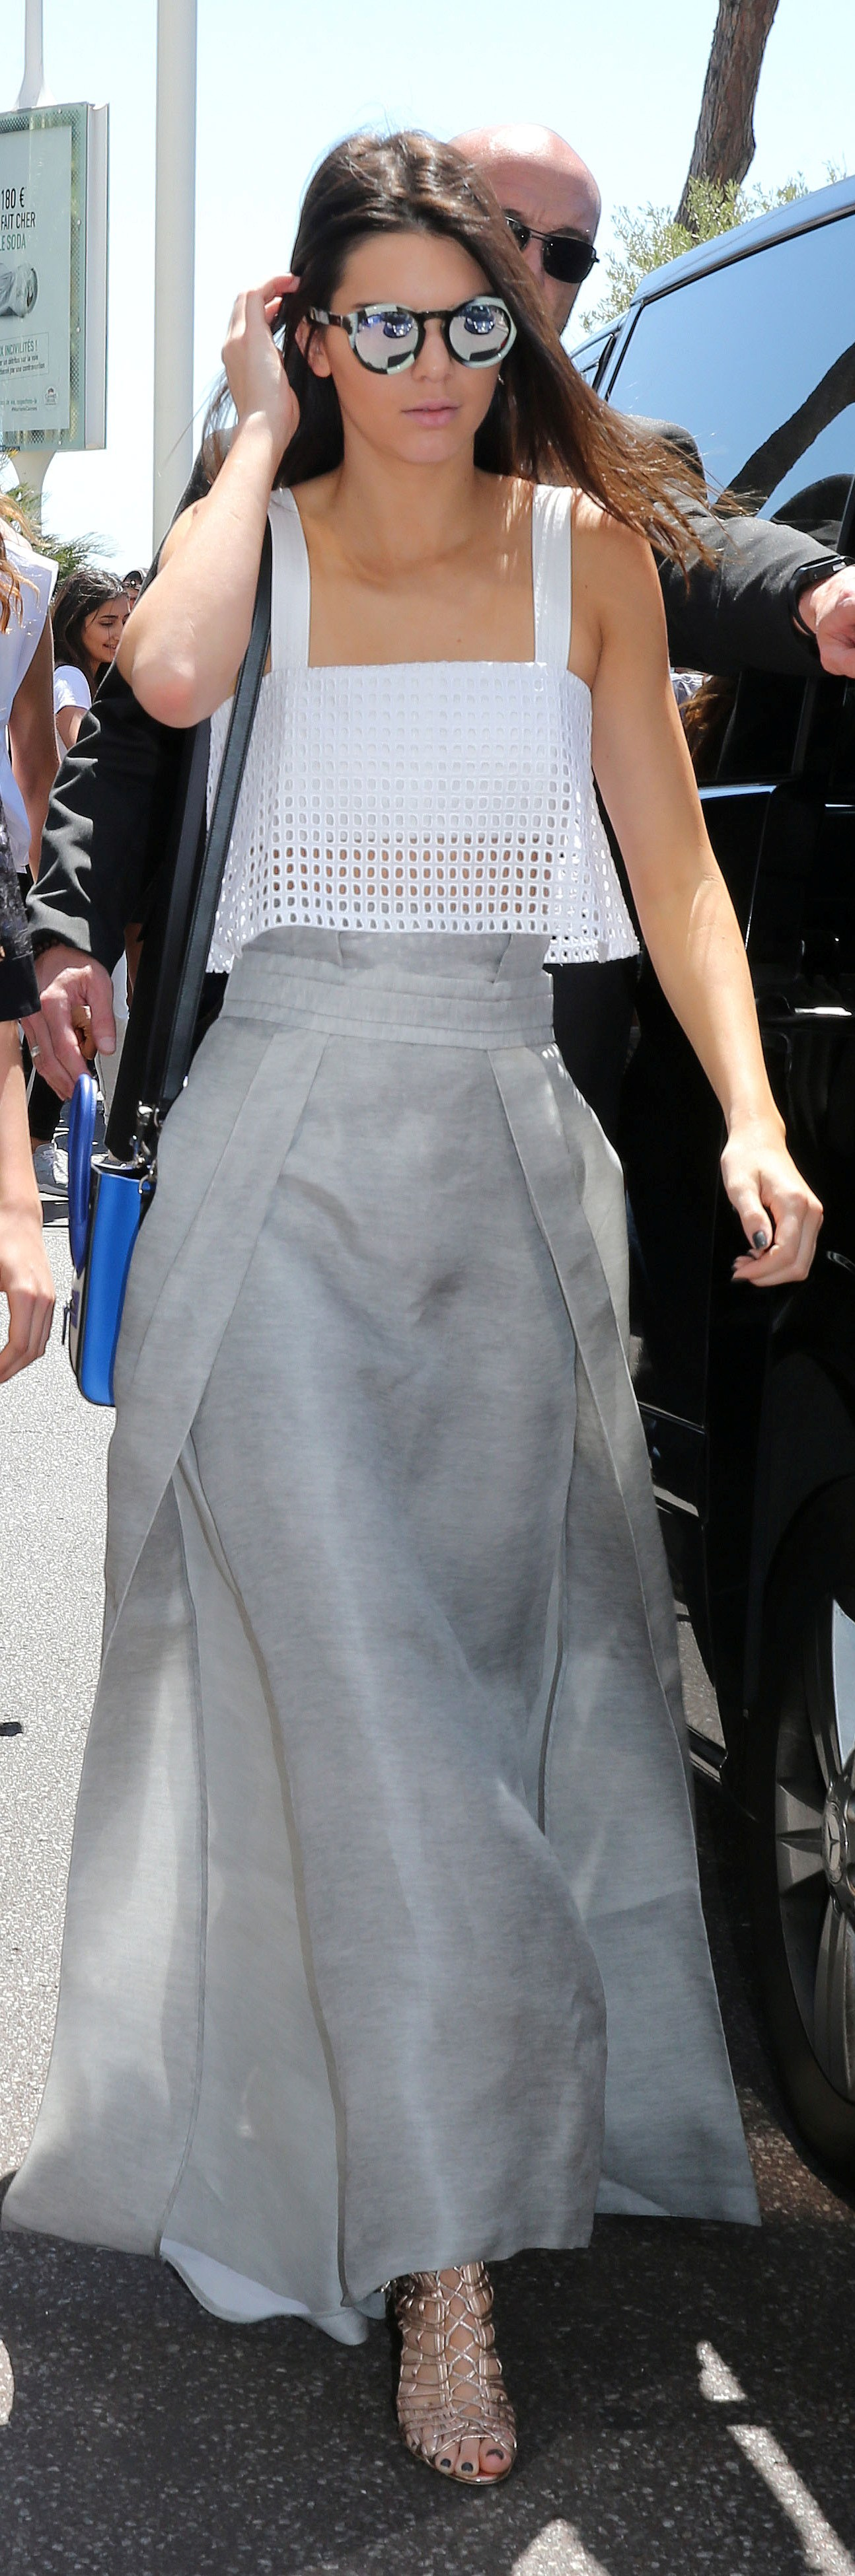 KENDALL JENNER > CANDIDS > 2015 > 05.20.15 - GRABBING LUNCH AT THE MARTINEZ BEACH CLUB IN CANNES